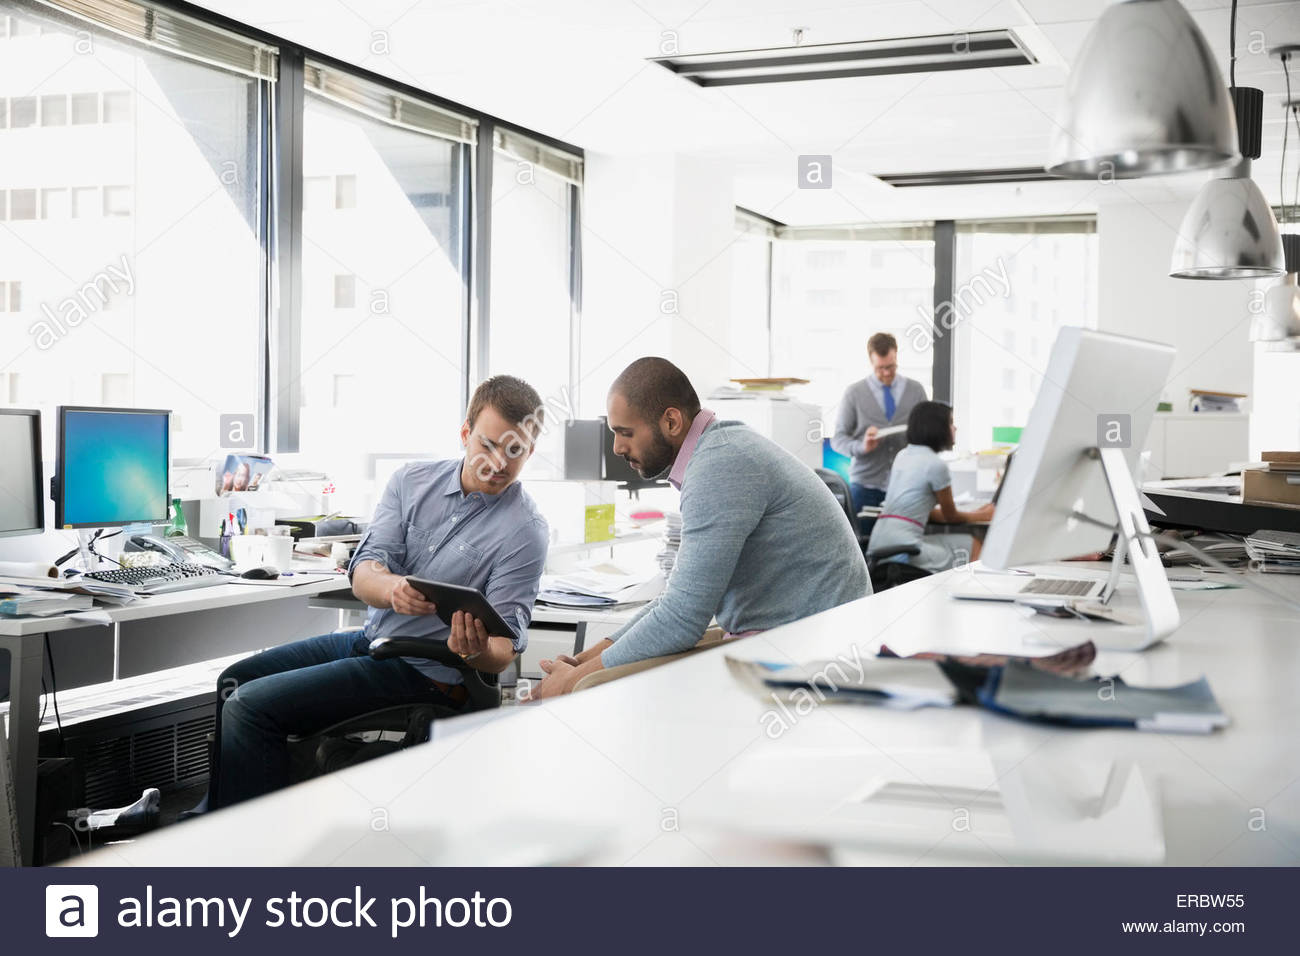 Designers working with digital tablet in office - Stock Image